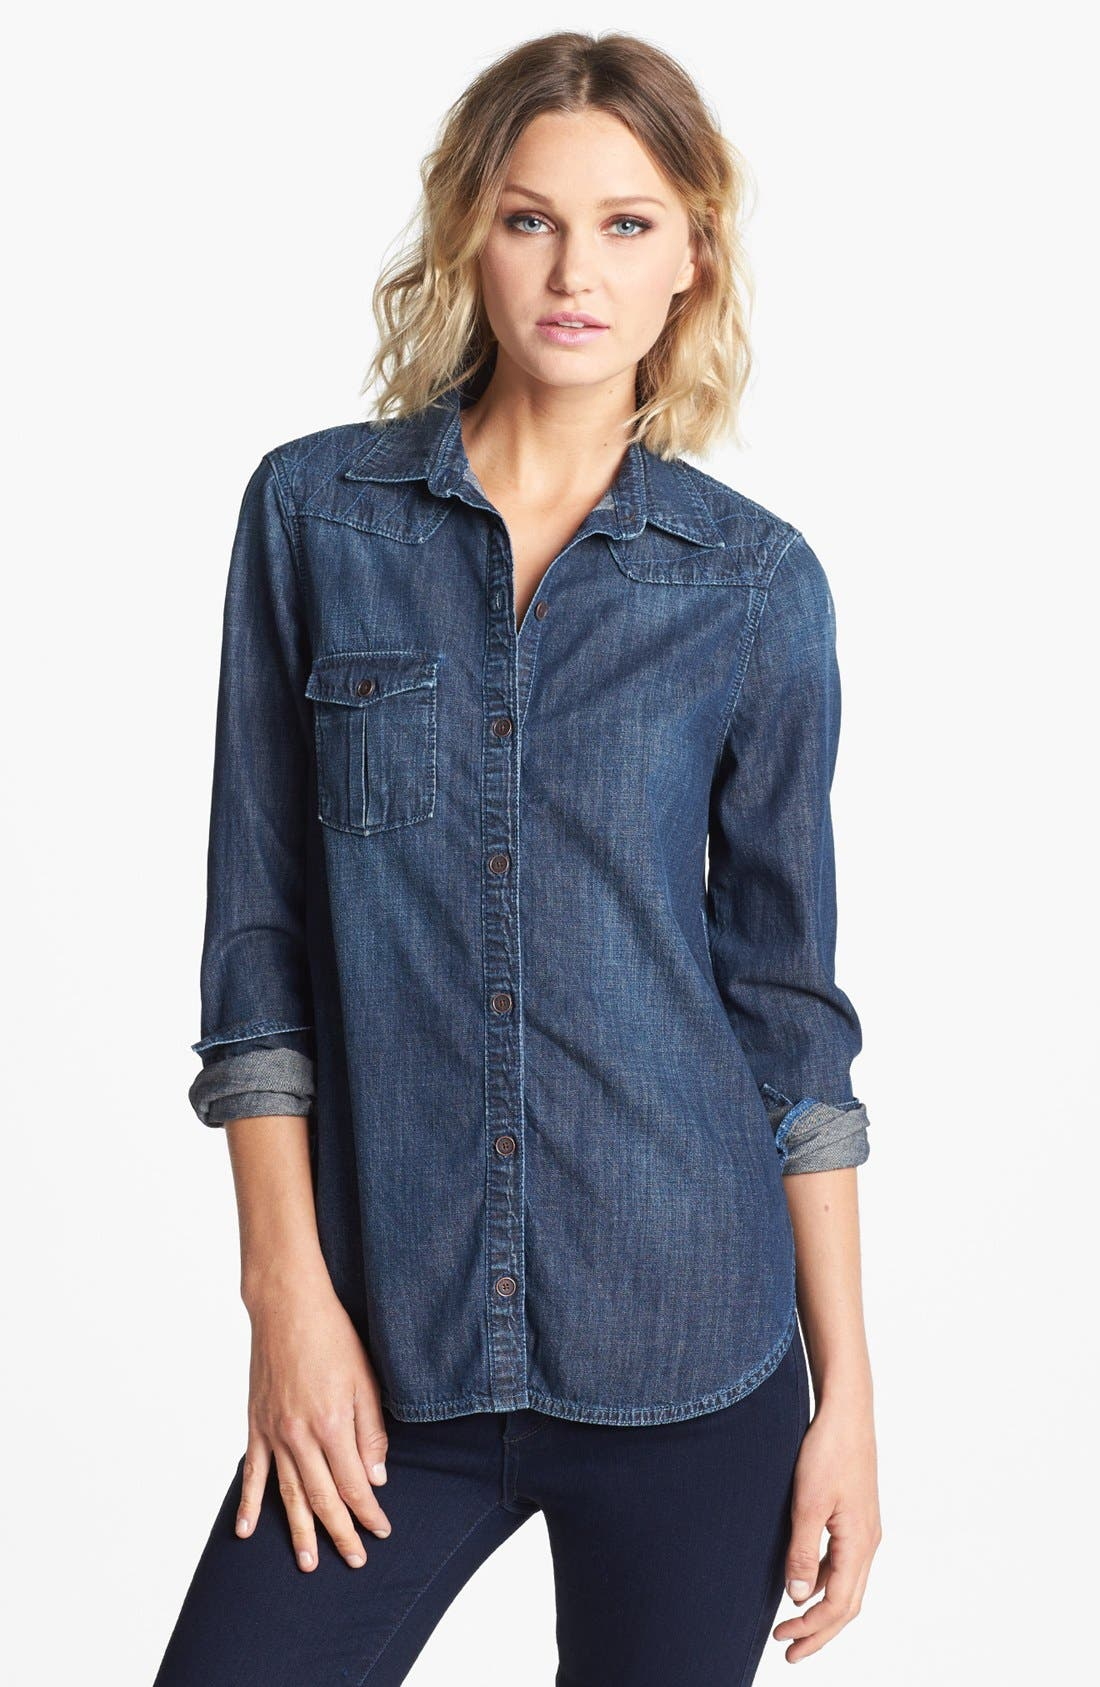 Alternate Image 1 Selected - Paige Denim 'Brooke' Stitched Yoke Denim Shirt